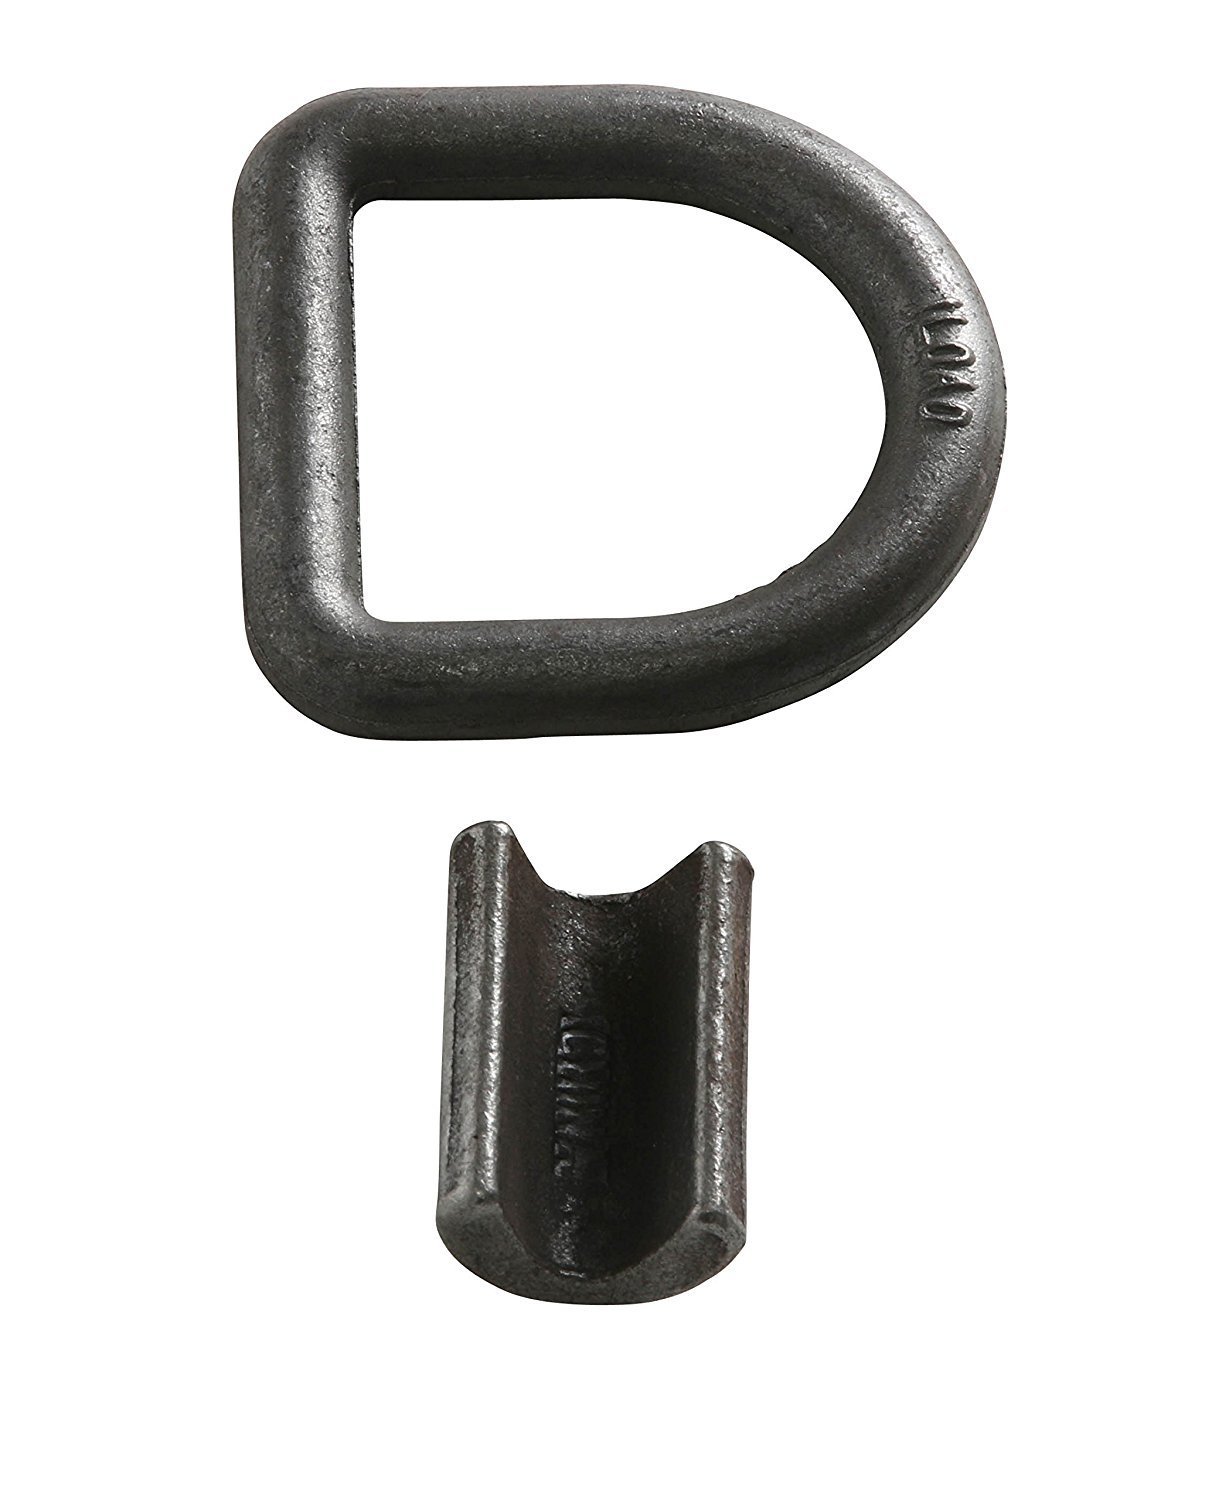 DC Cargo Mall Four Weld-On D Ring Tie Down Anchors 5//8 Forged Steel D Rings with Welding Clips